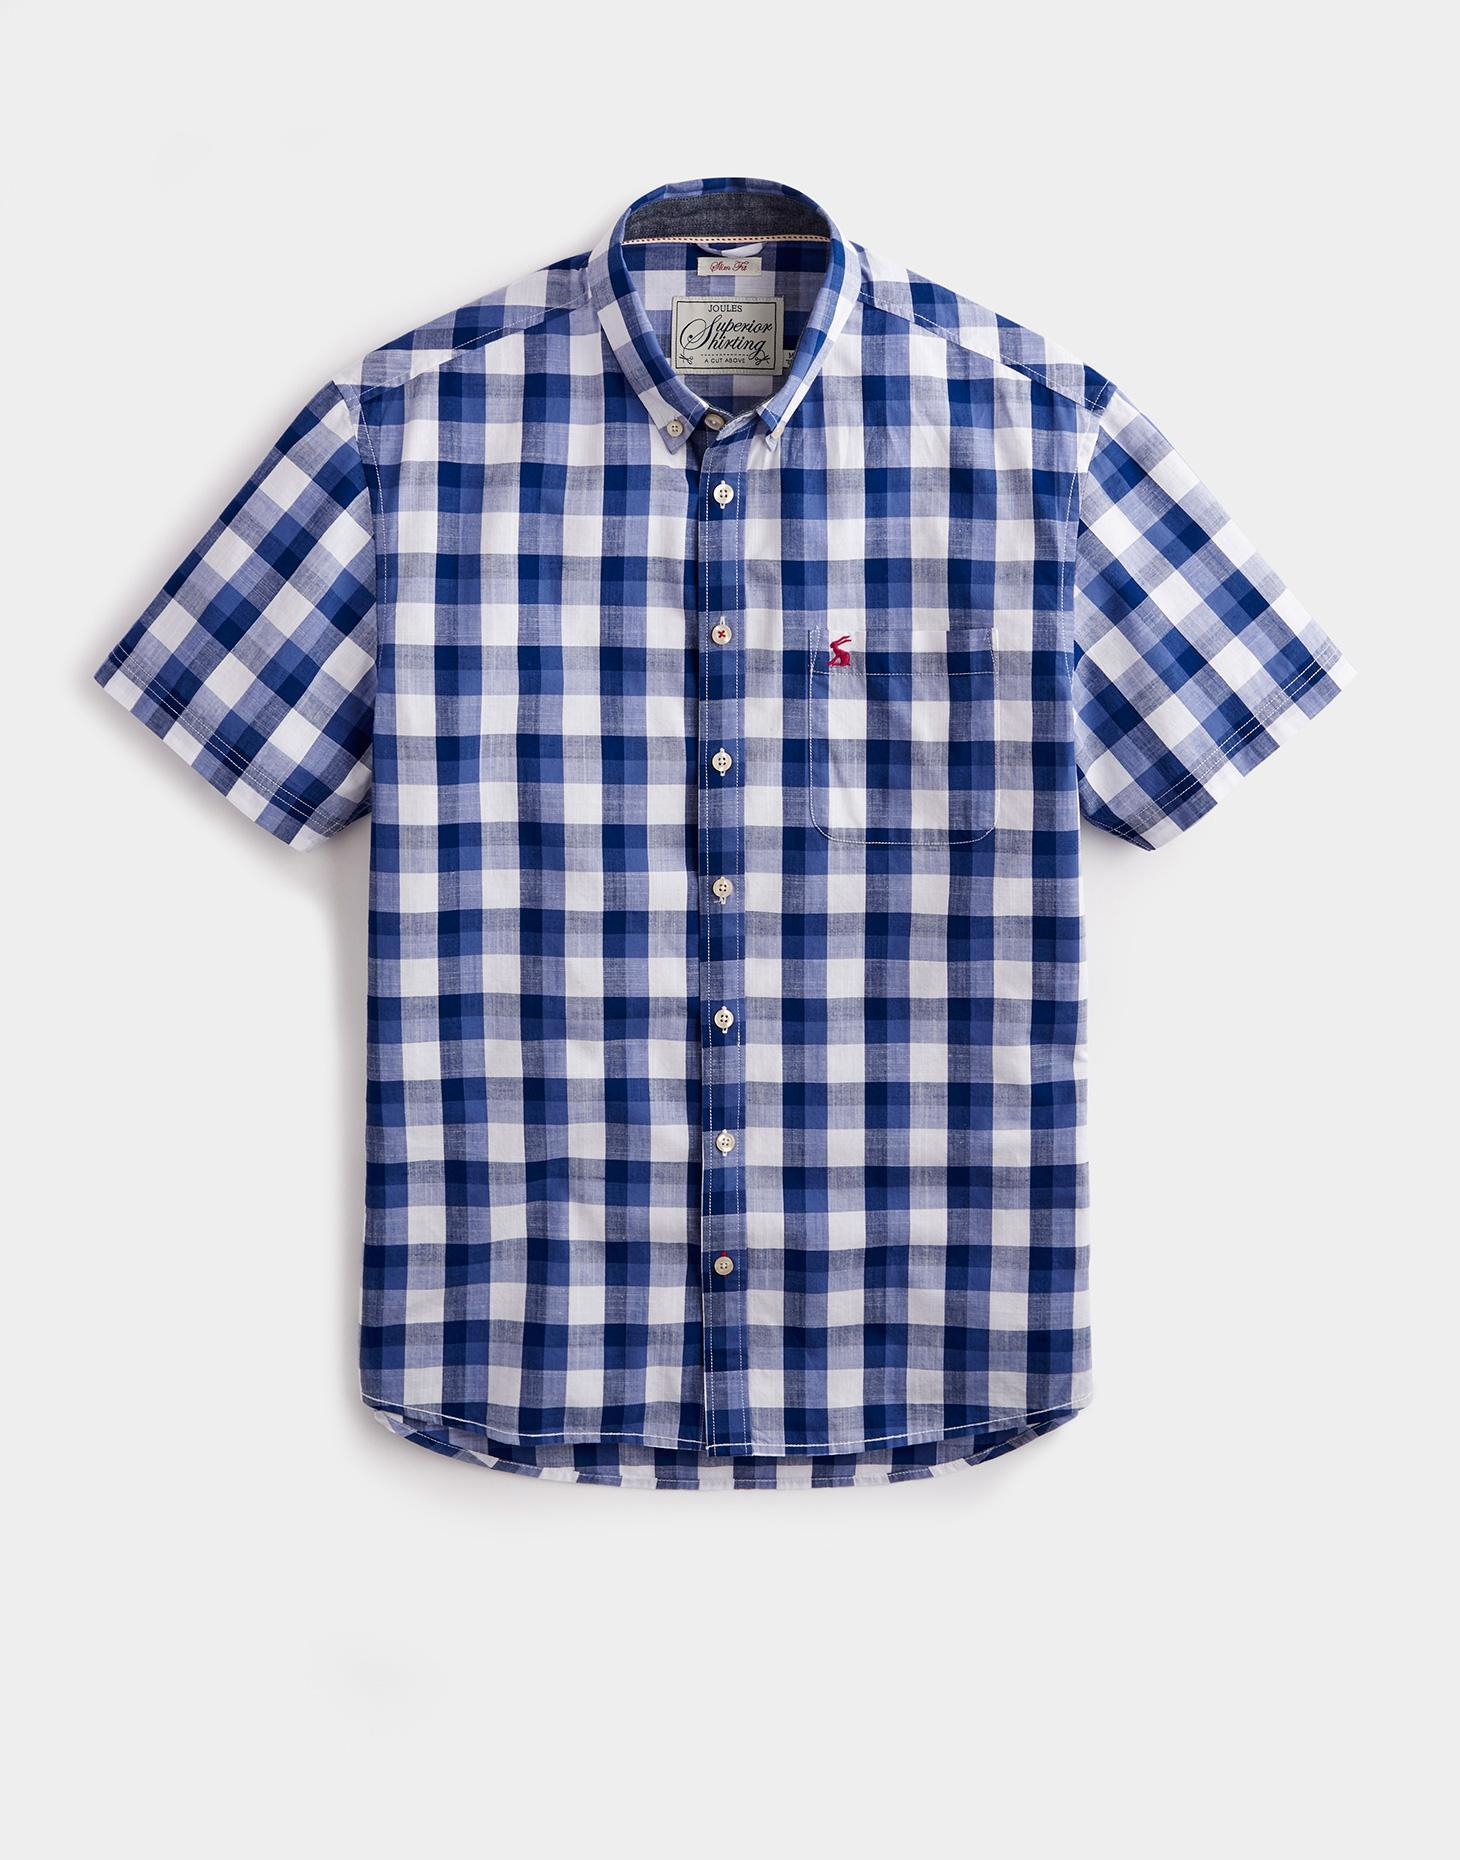 Joules Ink Blue Gingham WILSON Classic Fit Shirt